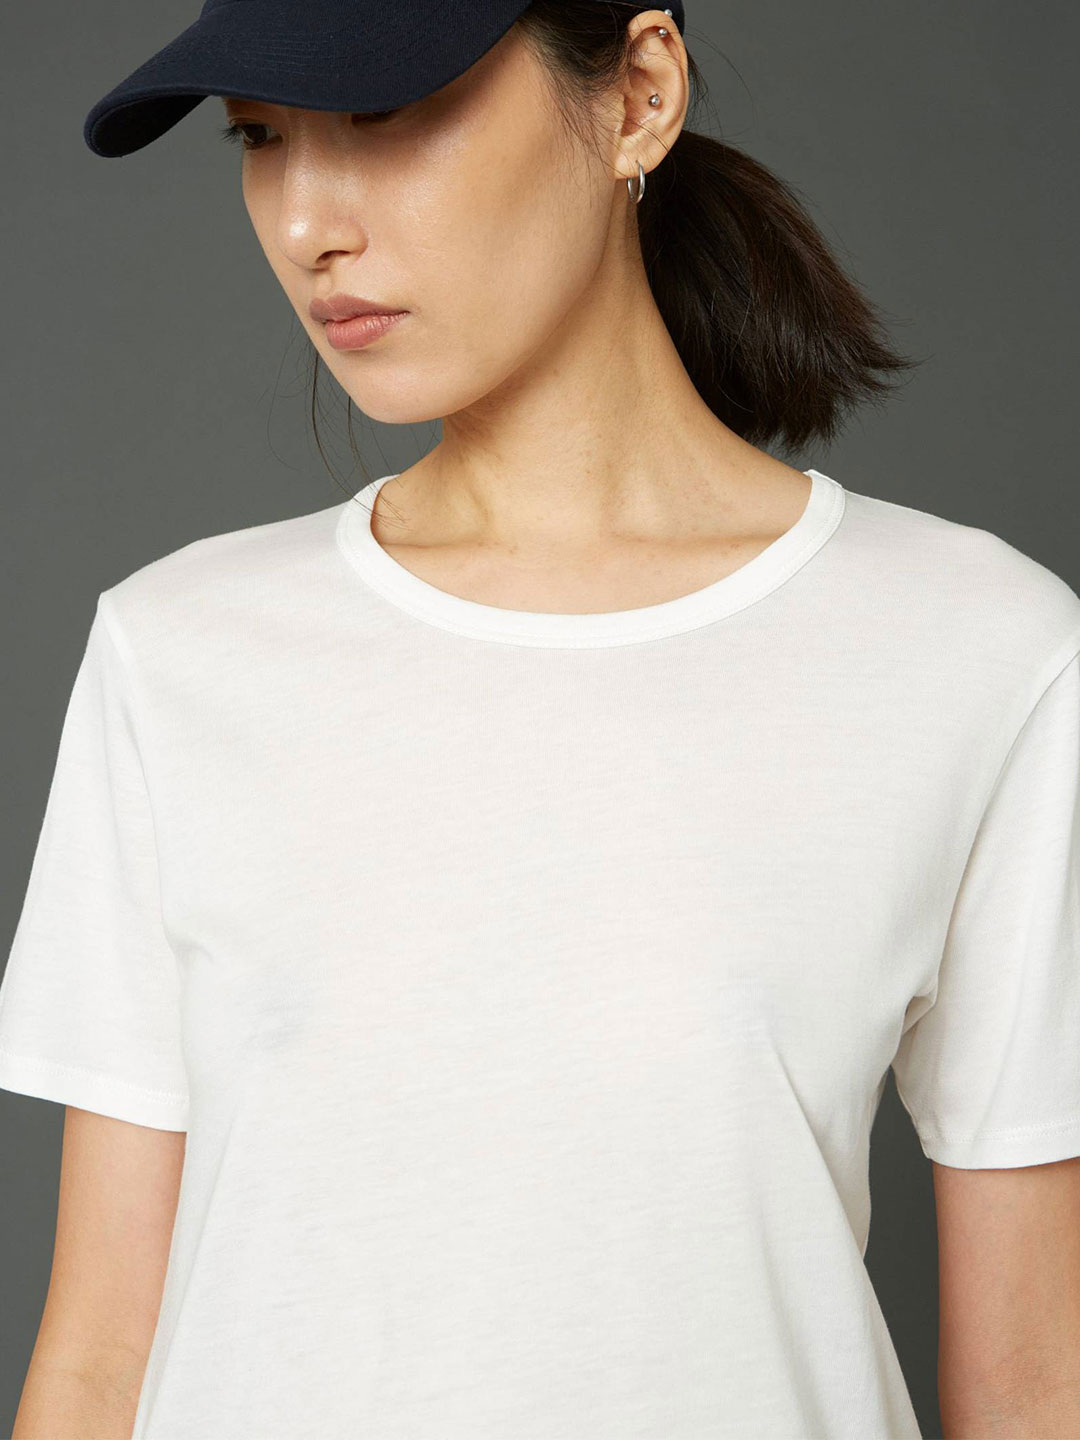 A1074-One-Edit-Tee-Hope-Sthlm-Off-White-Front-Side